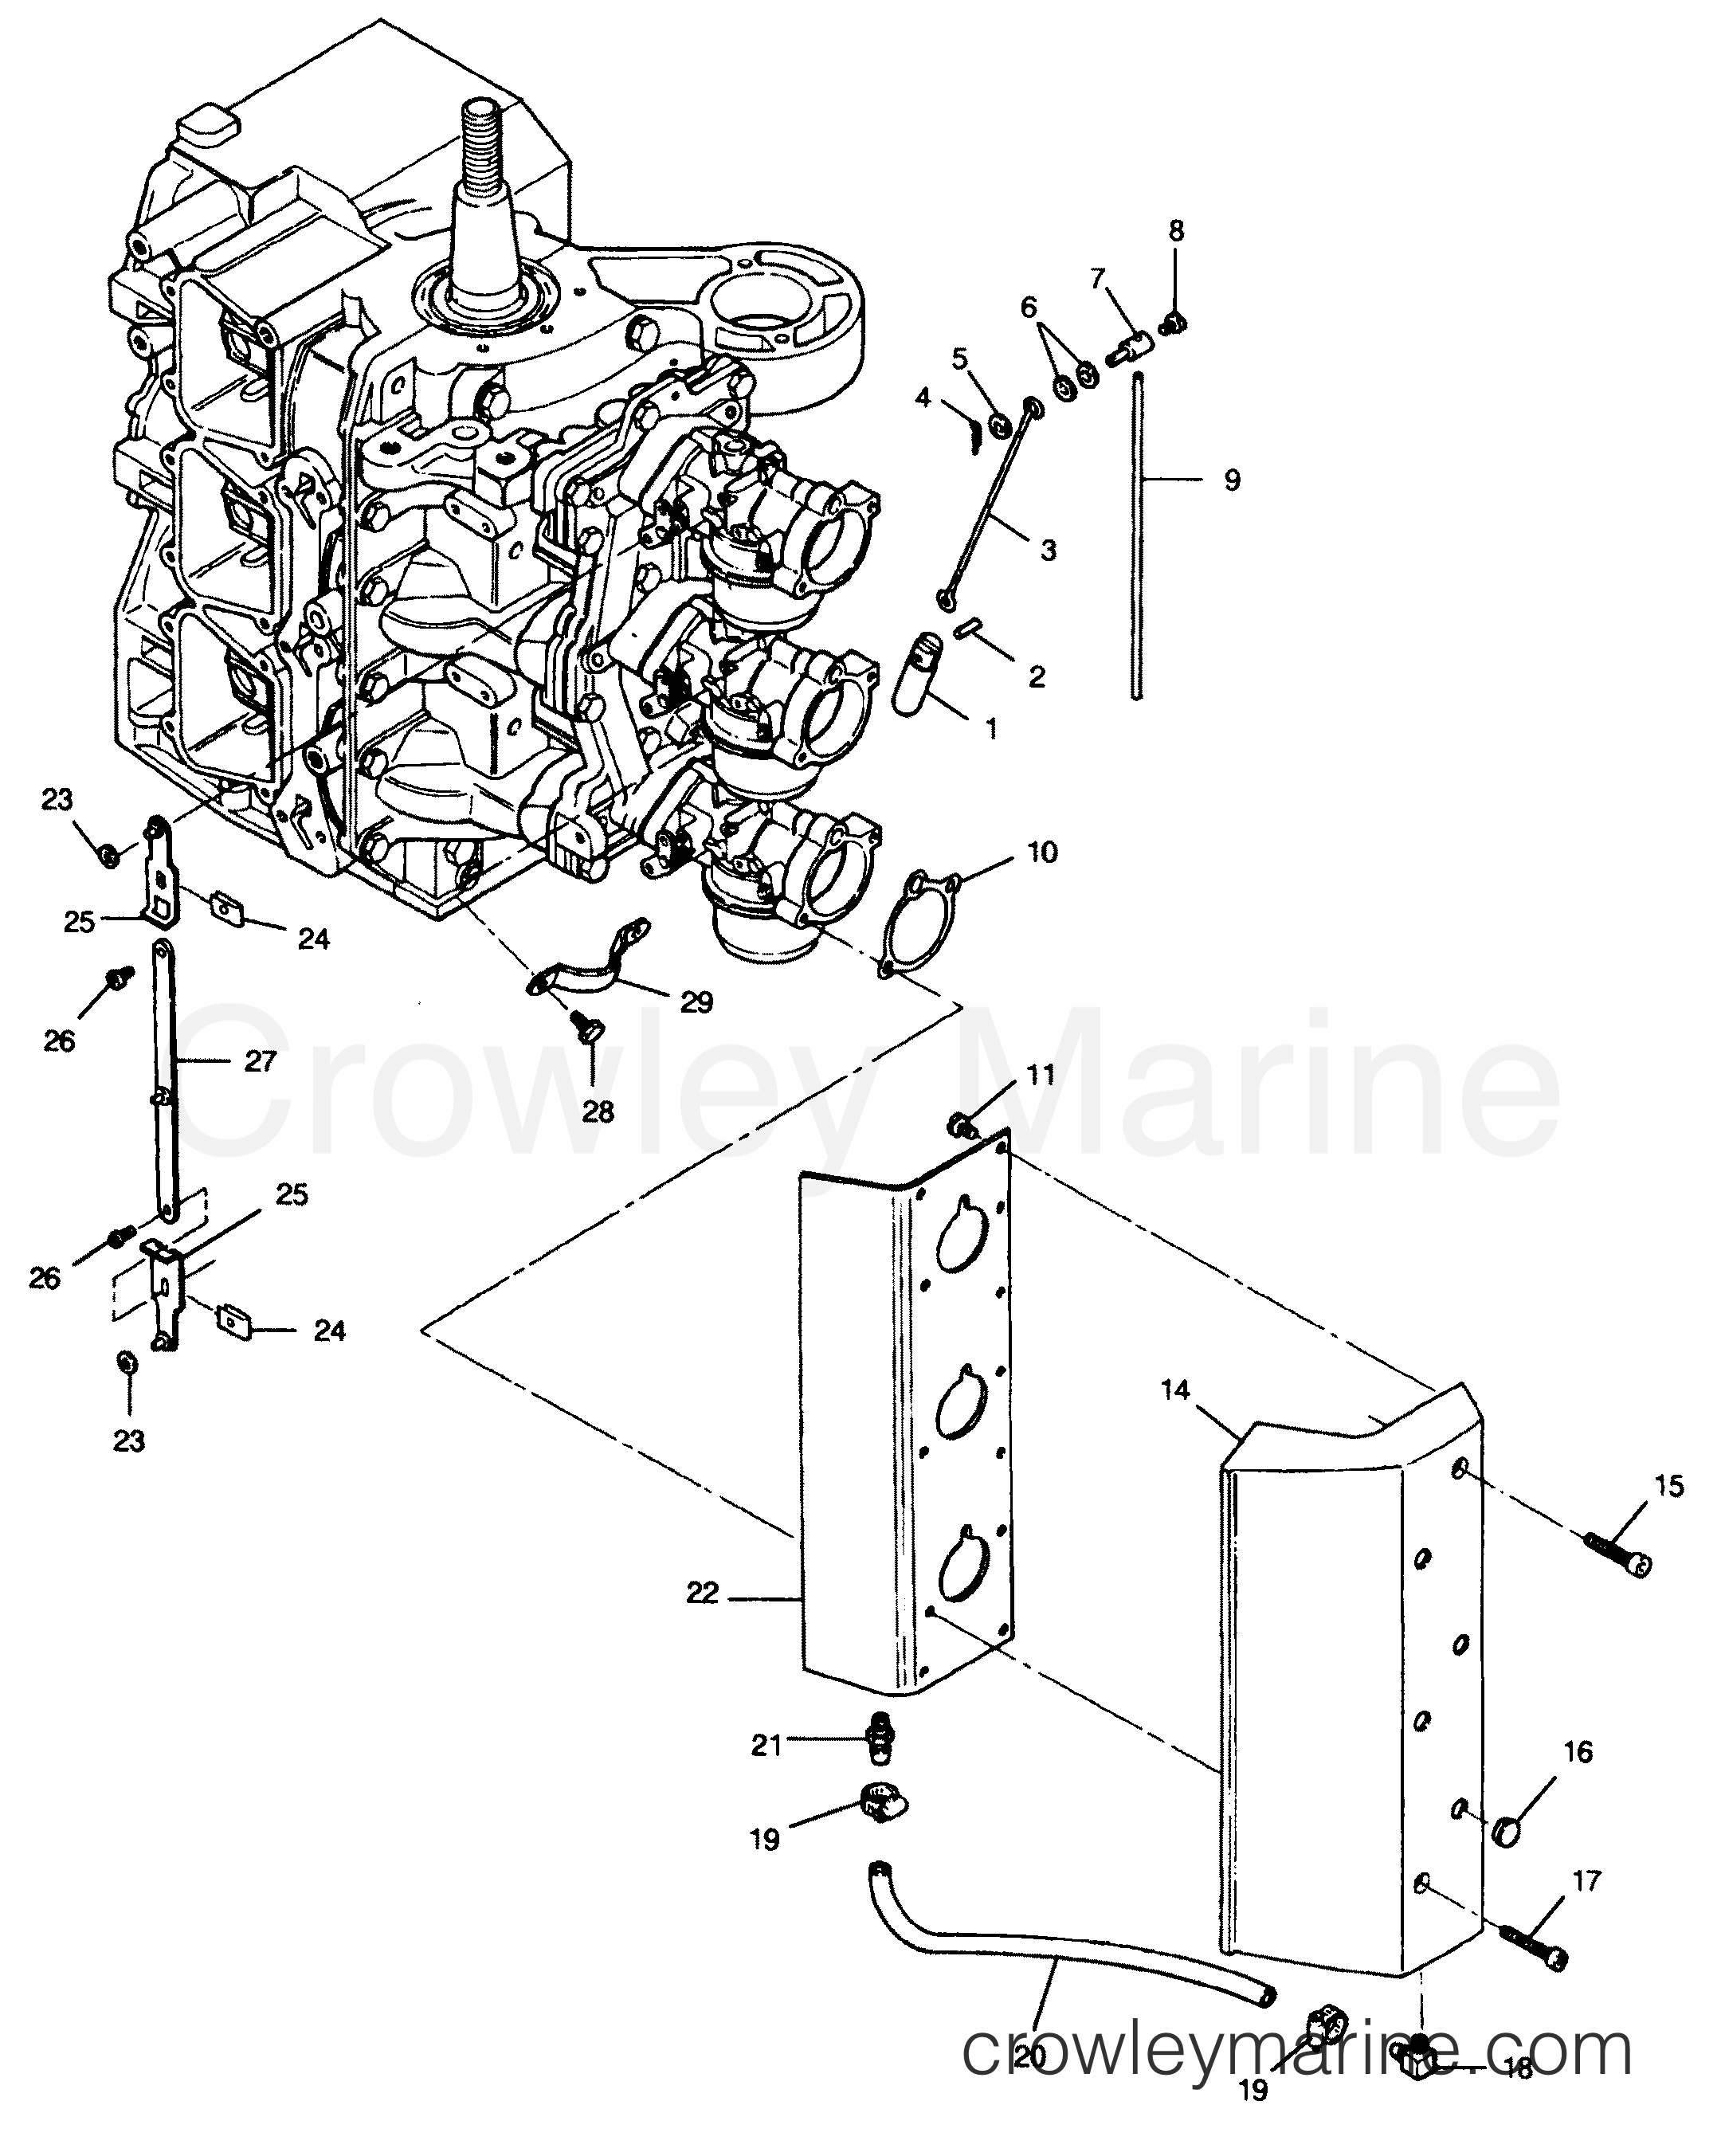 wiring diagram for a 1995 mercury force 40 hp